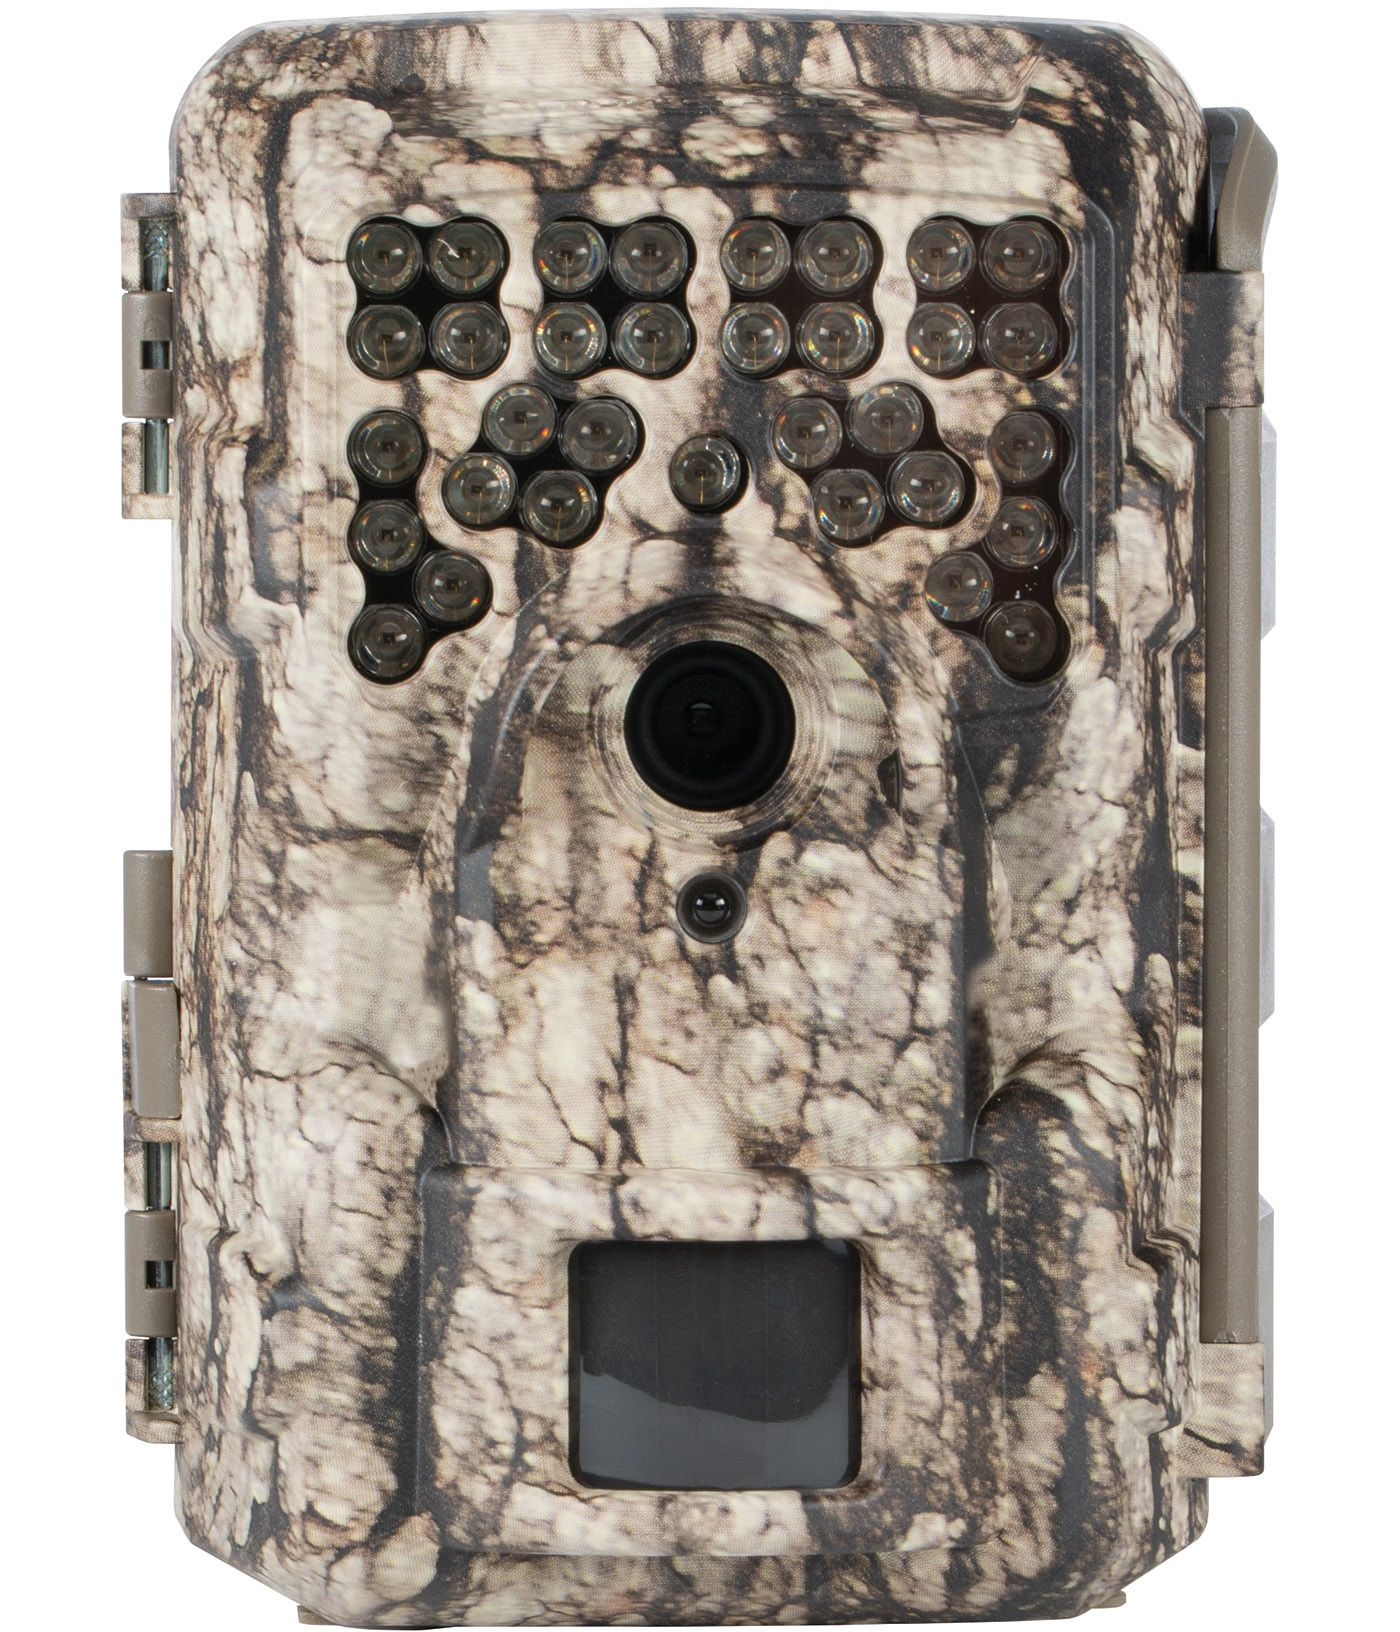 Moultrie D-4000I Wildlife Camera